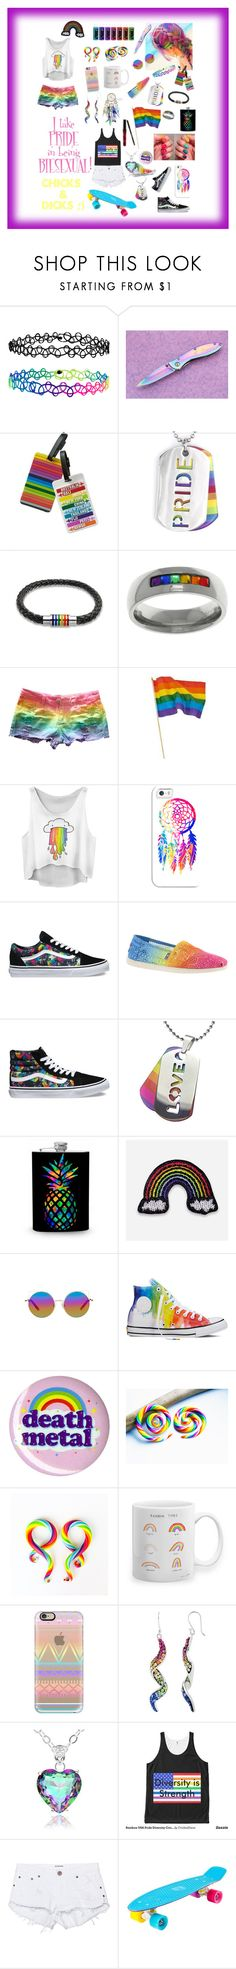 """PRIDE LGBTQ"" by carlile3121 ❤ liked on Polyvore featuring Accessorize, TravelSmith, West Coast Jewelry, Bling Jewelry, Carolina Glamour Collection, Casetify, Vans, Skechers, Hipstapatch and Matthew Williamson"